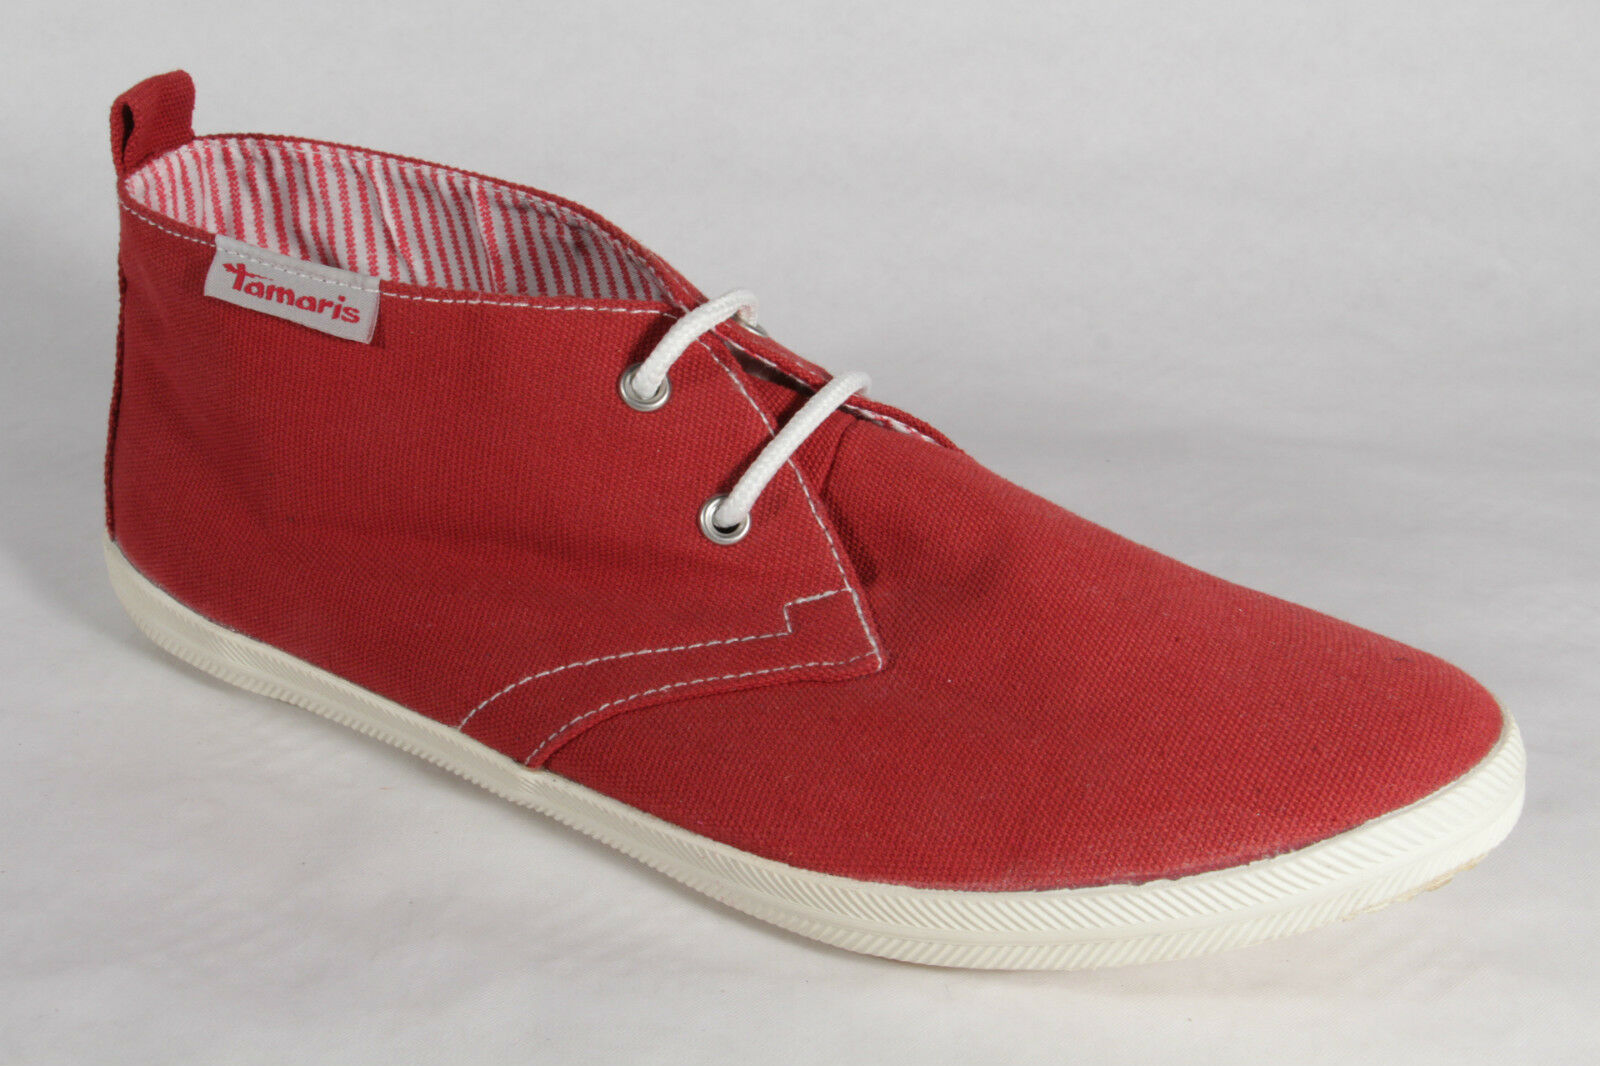 Women's Lace-Up shoes, Low shoes, Trainers, Fabric Red New